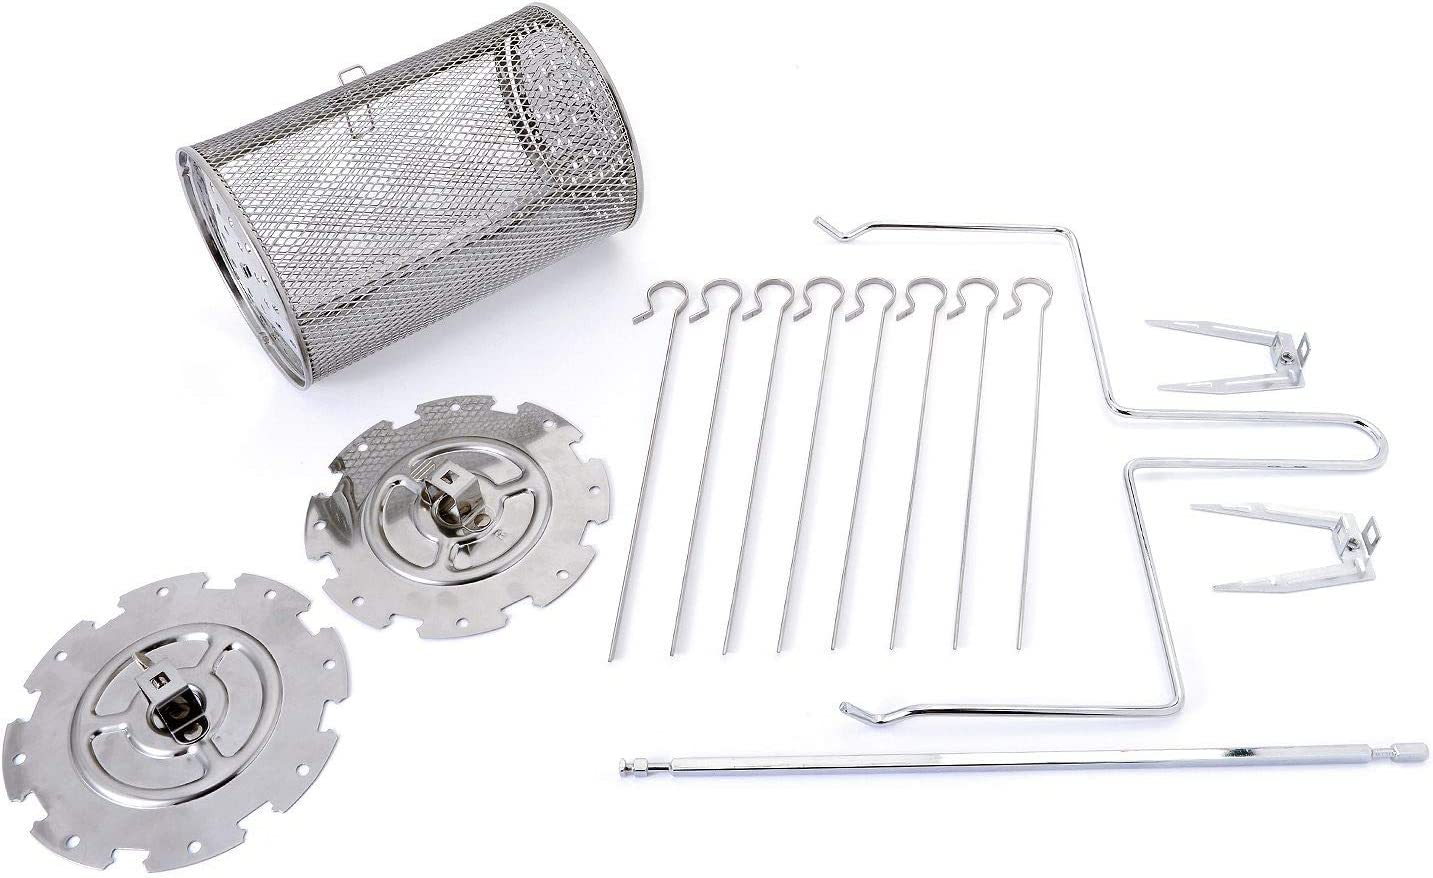 Paula Deen Air Oven Accessory Kit, Compatible with Paula Deen 24 QT Air Fryer Oven, Includes Rolling Cage, 8 Skewers, Skewer Rack, Rotisserie Rod, Rotisserie Forks, Removal Handle for Rotisserie